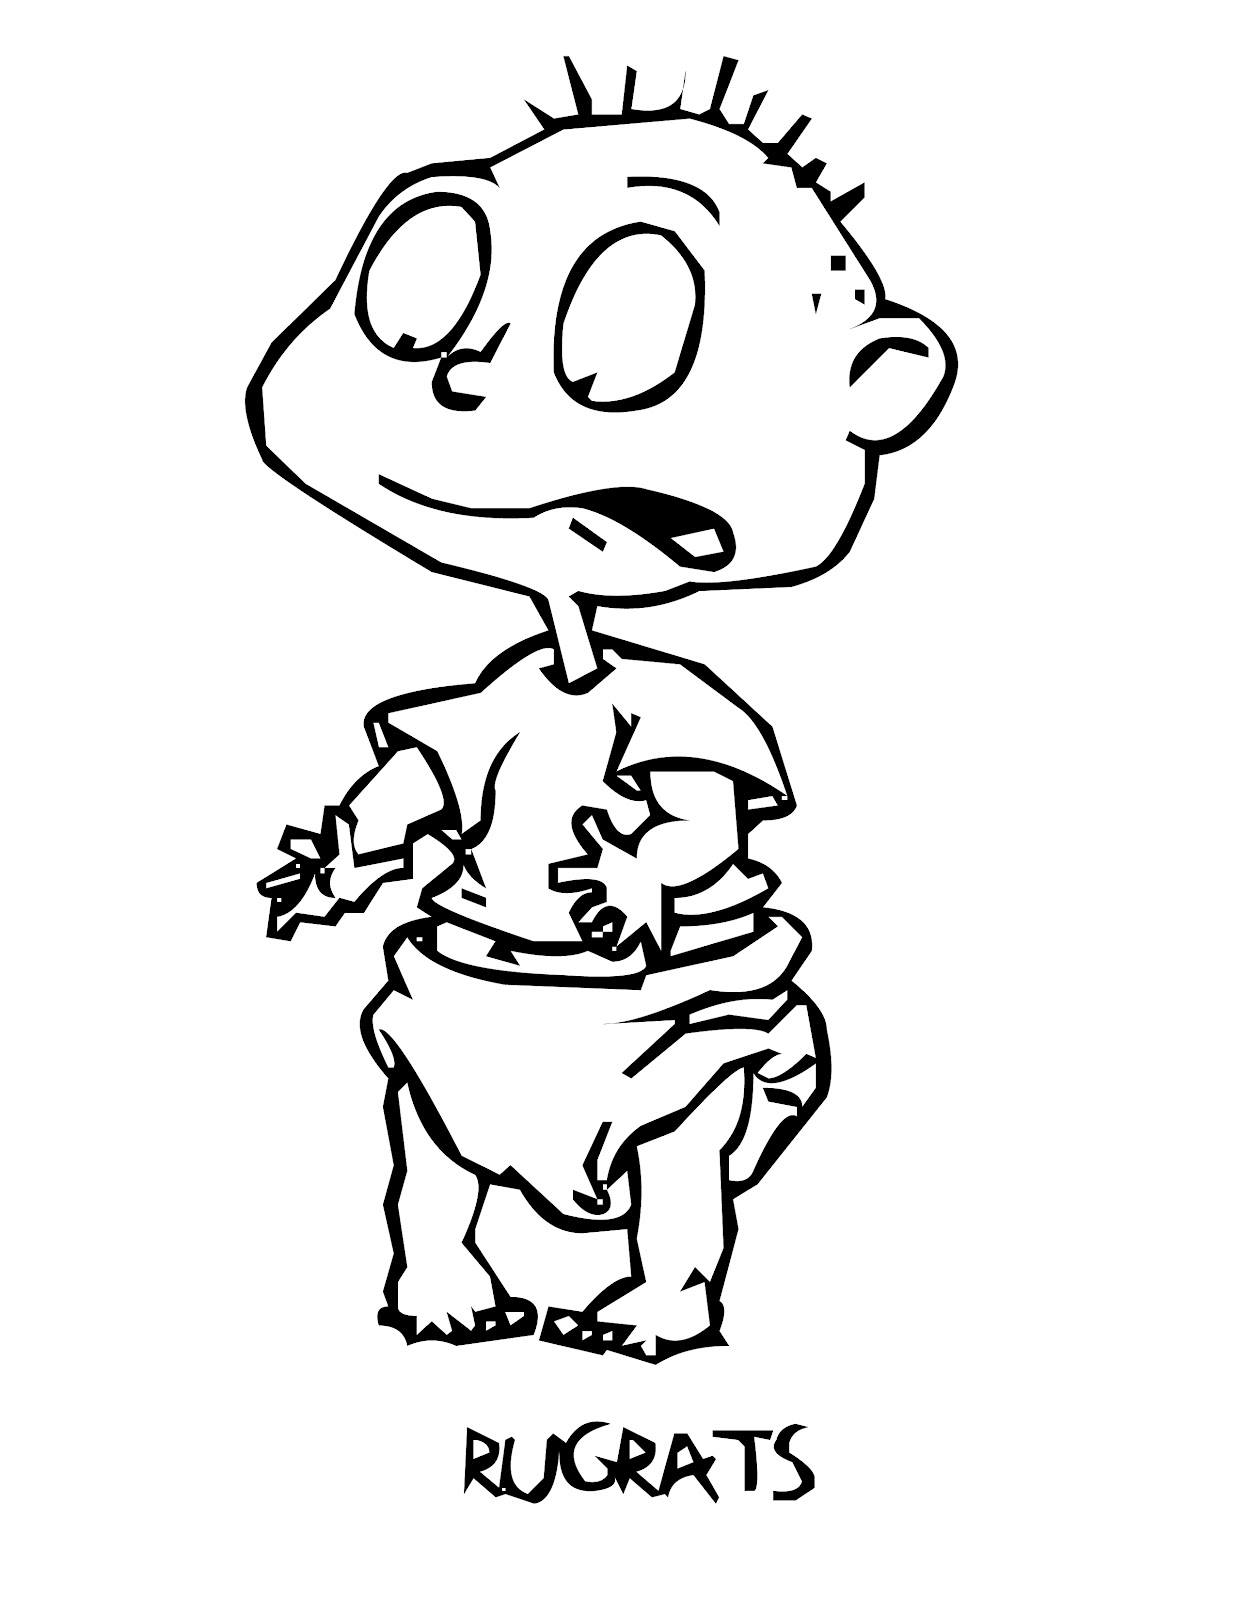 rugrats coloring pages to print free printable rugrats coloring pages for kids print rugrats coloring pages to